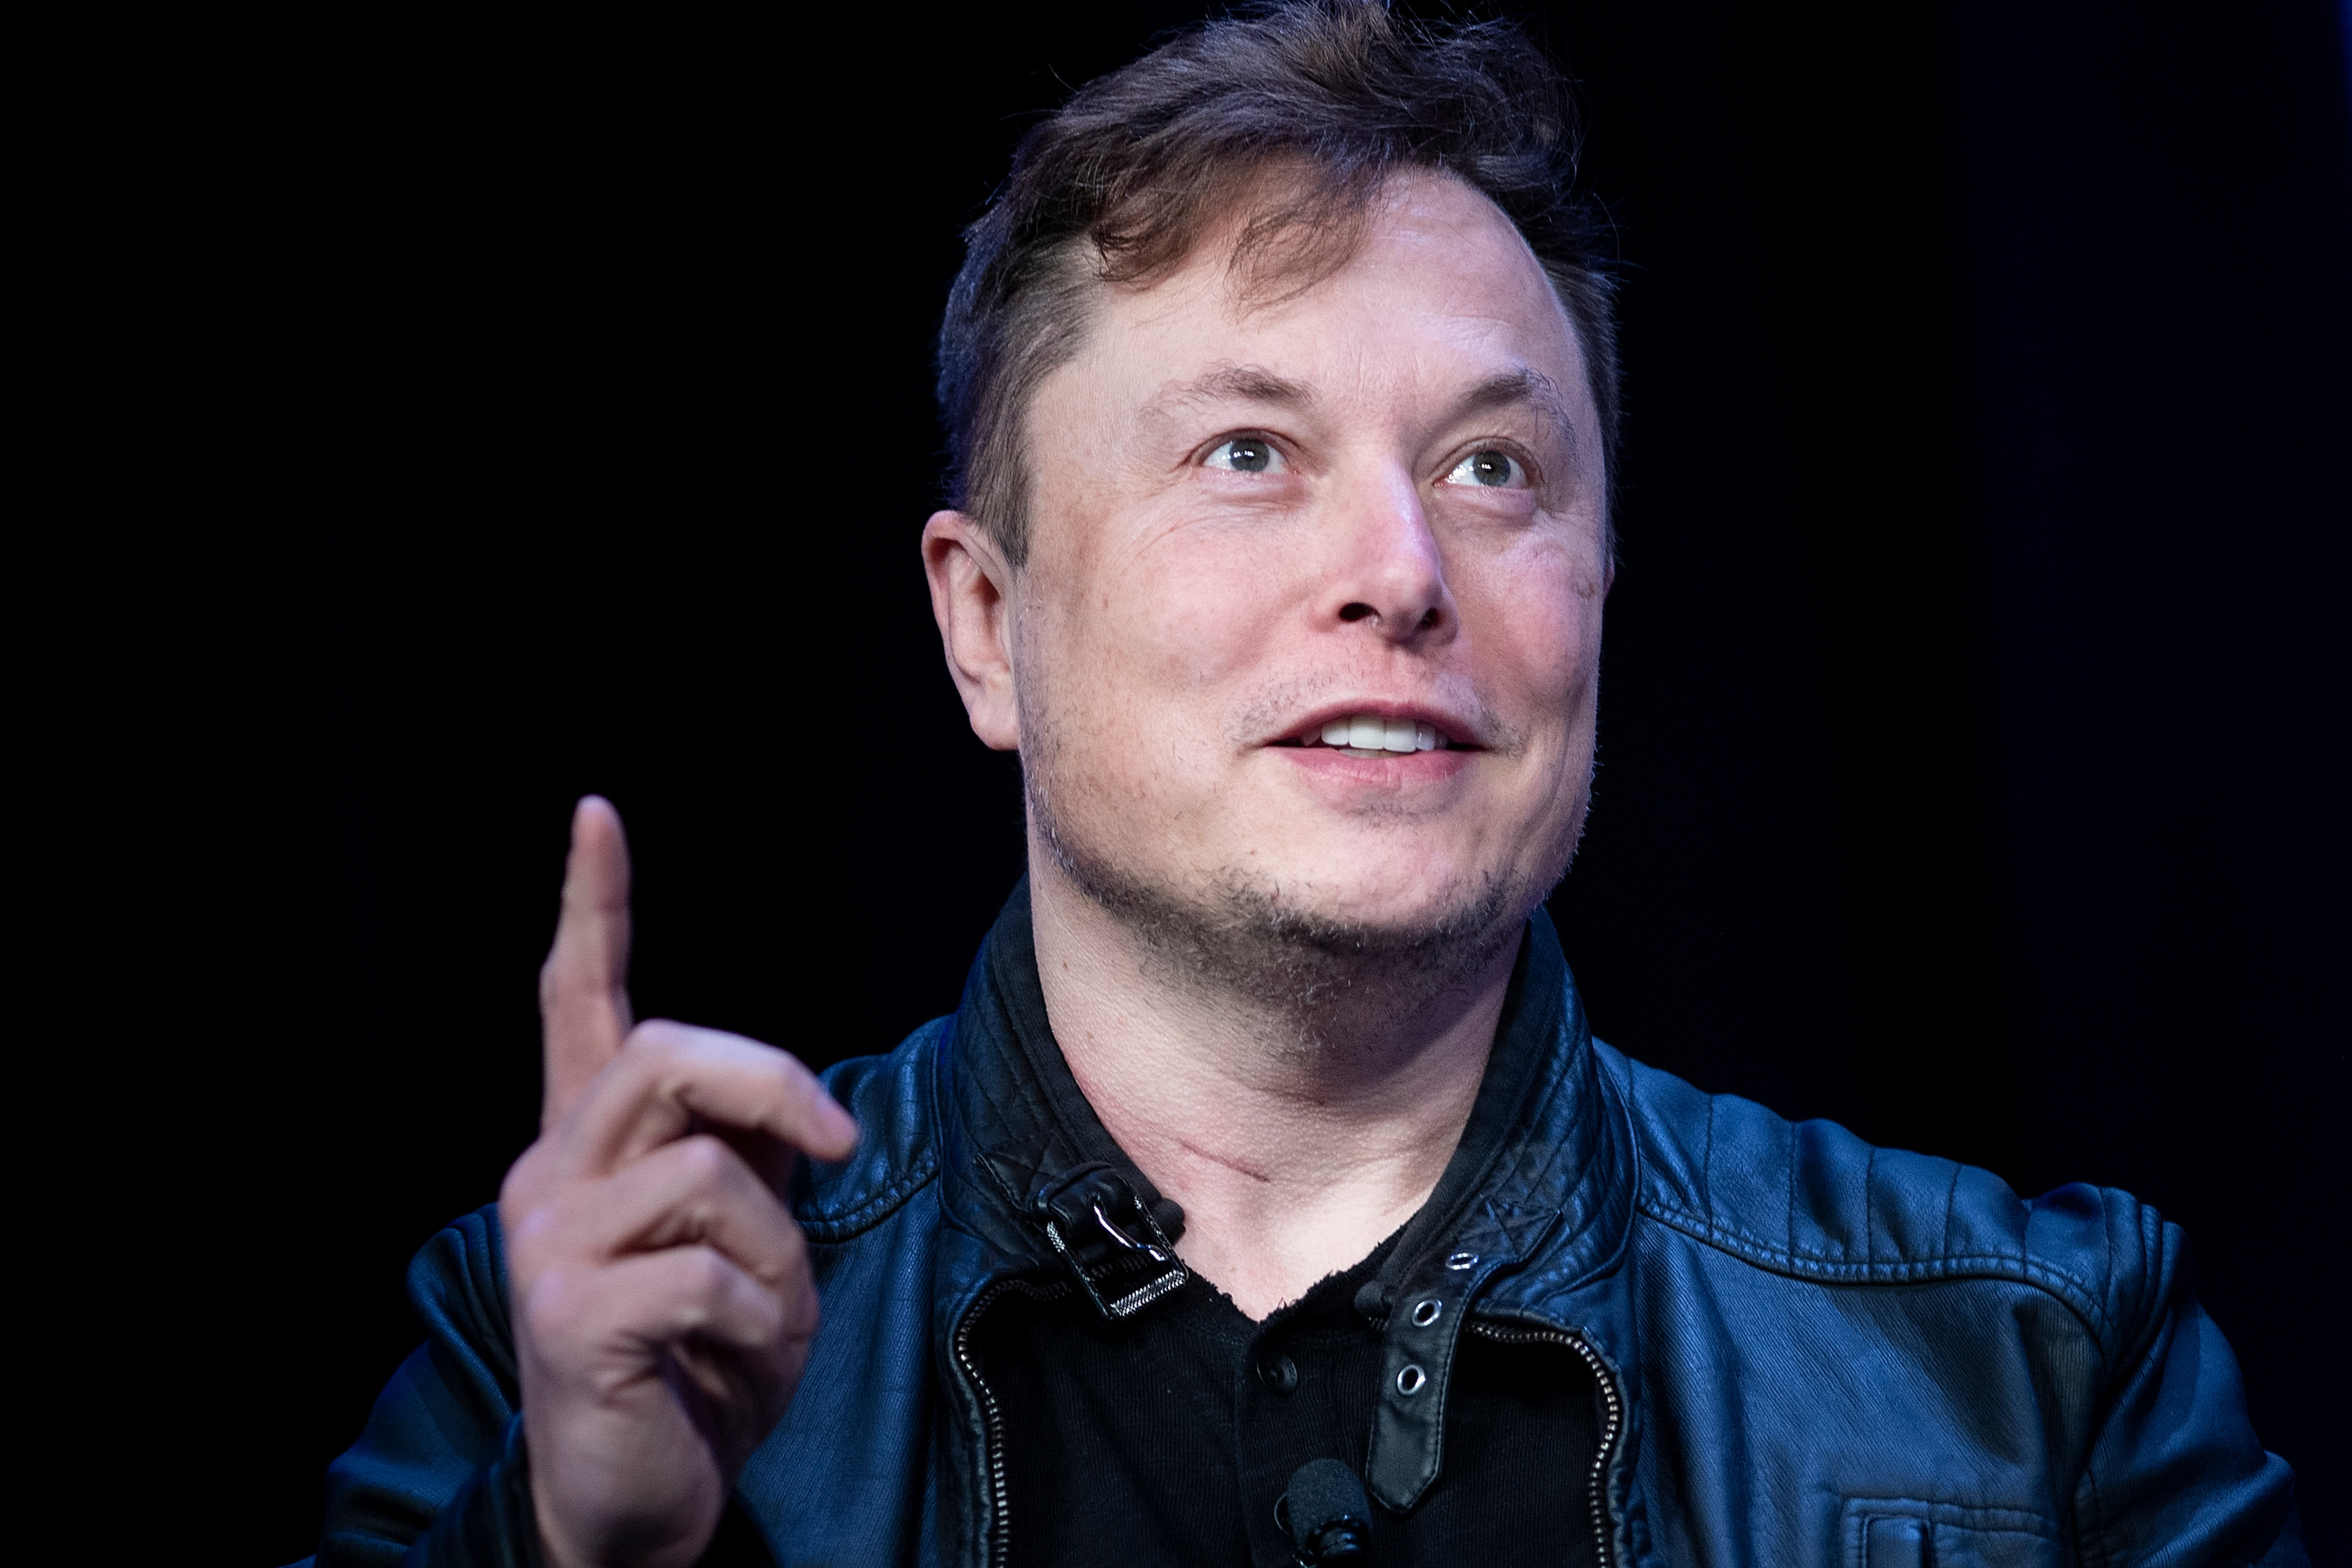 how tesla and spacex ceo elon musk spends his billions spacex ceo elon musk spends his billions